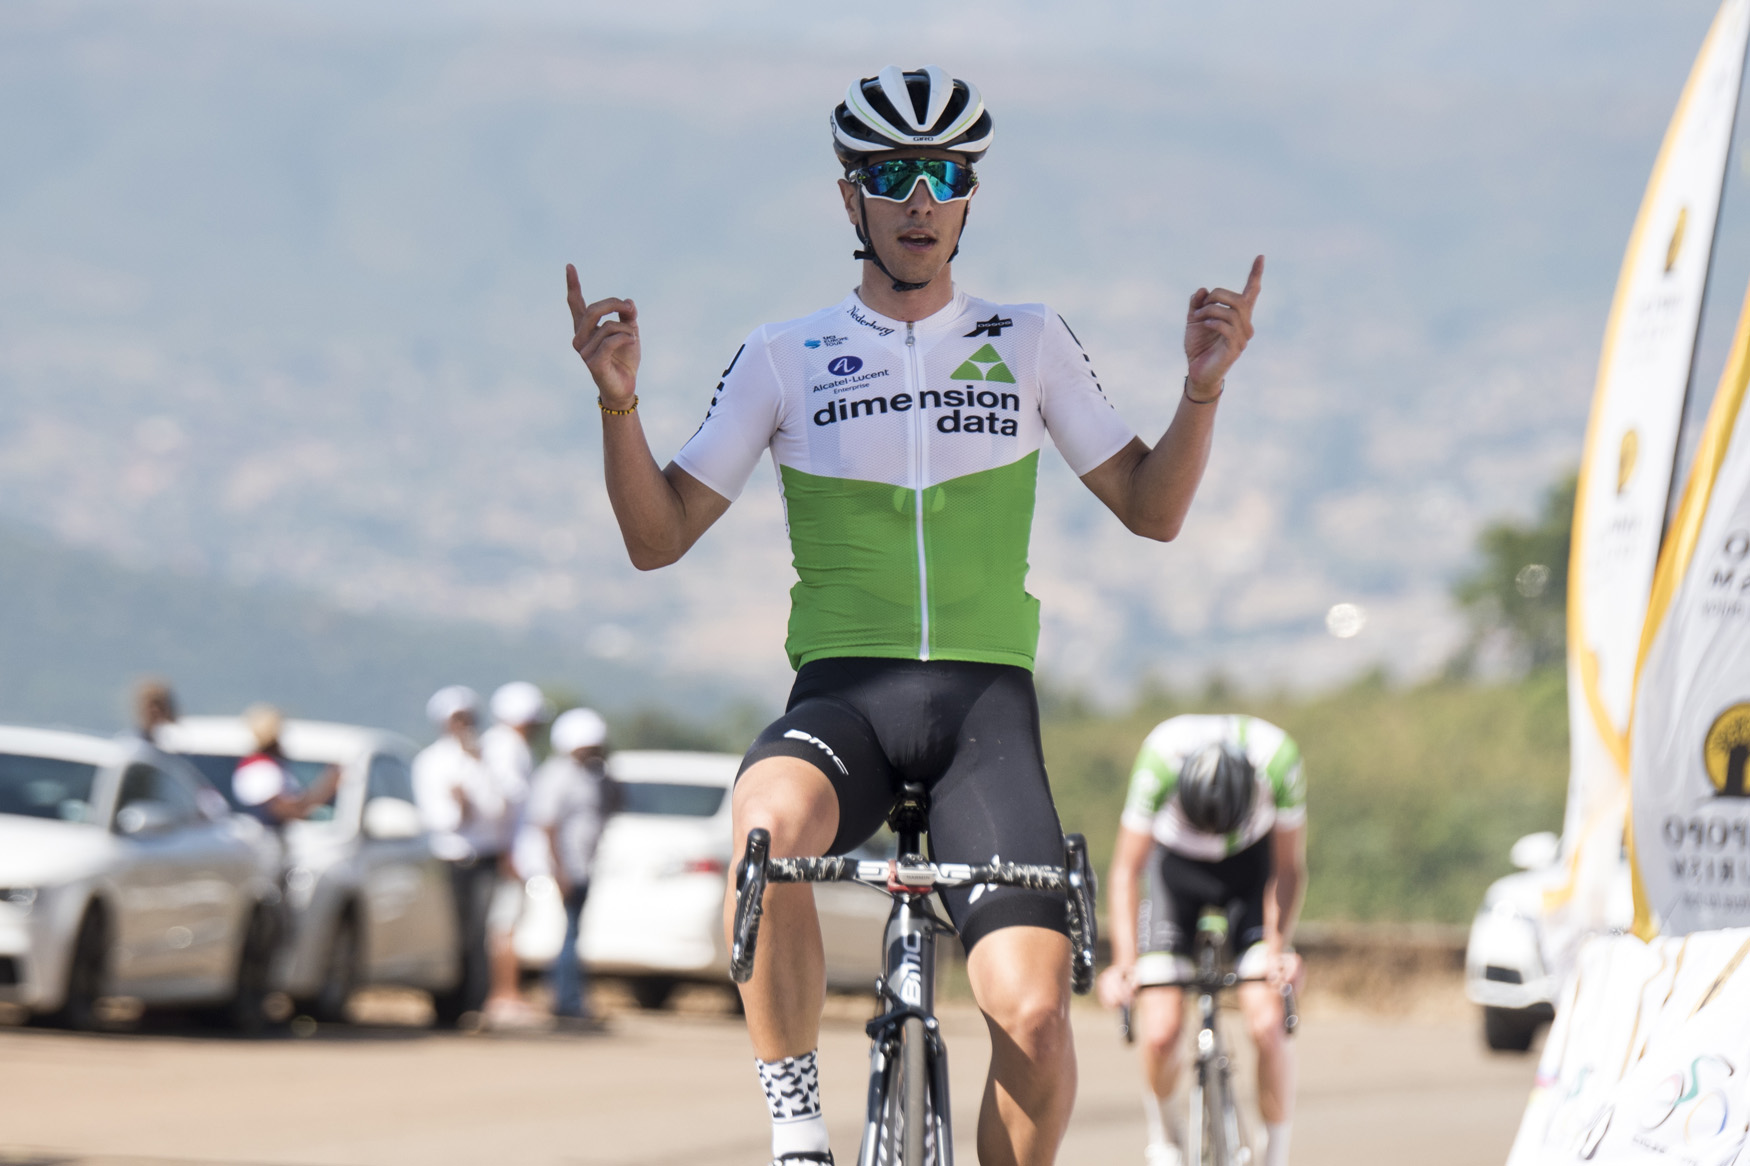 Team Dimension Data Continental's Samuele Battistella raises does the victory salute atop the Old Coach Road after winning the stage in  02:32:26  from Tzaneen to Old Coach Road, Mt. Agatha, on Stage 3 of the 2019 Tour de Limpopo (UCI 2.2) from 14-18 May © Tour de Limpopo/Andrew Mc Fadden